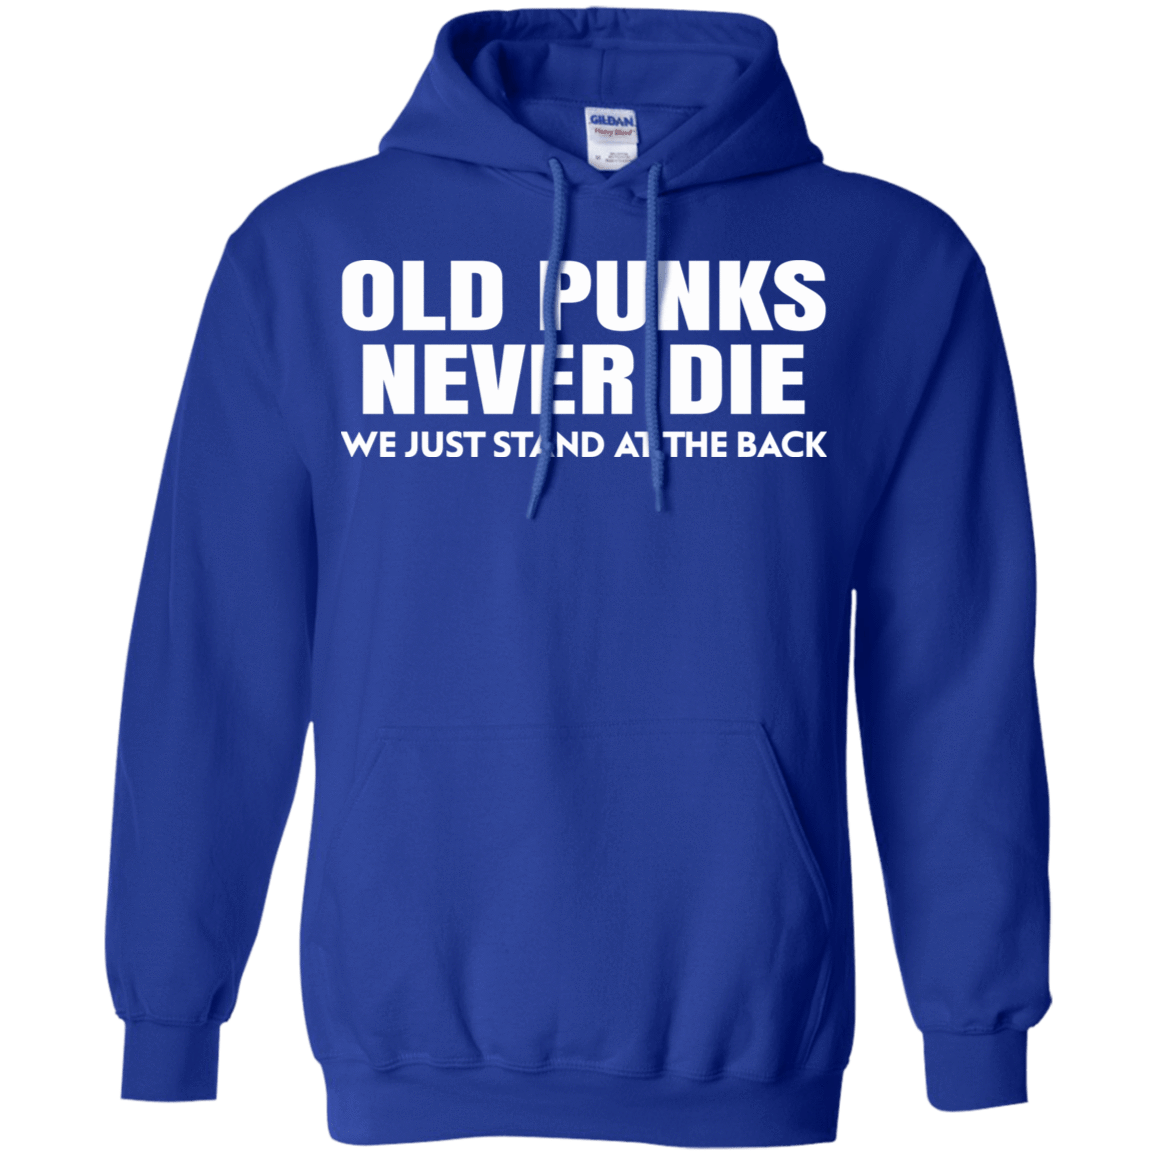 Old Punks Never Die We Just Stand At The Back 541-4765-73420975-23175 - Tee Ript